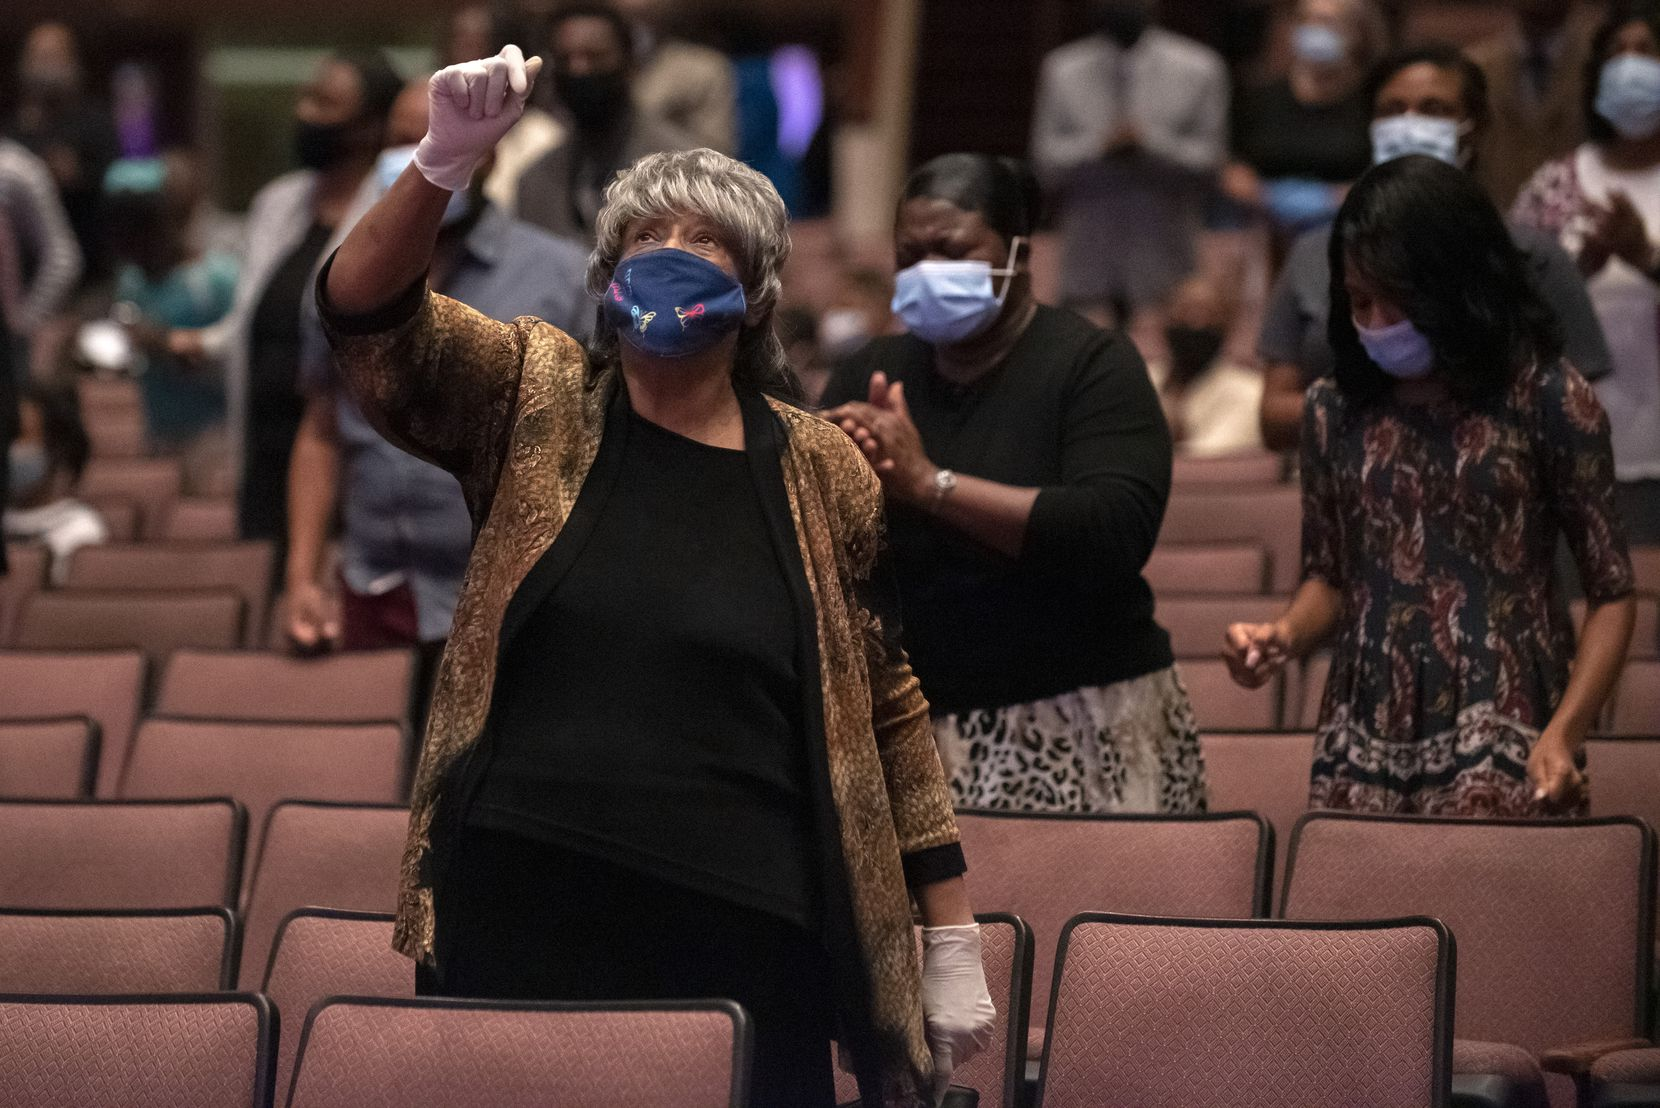 Rosie Phillips-Walker dances and sings during the beginning of Bible study at Full Gospel Holy Temple in Dallas.